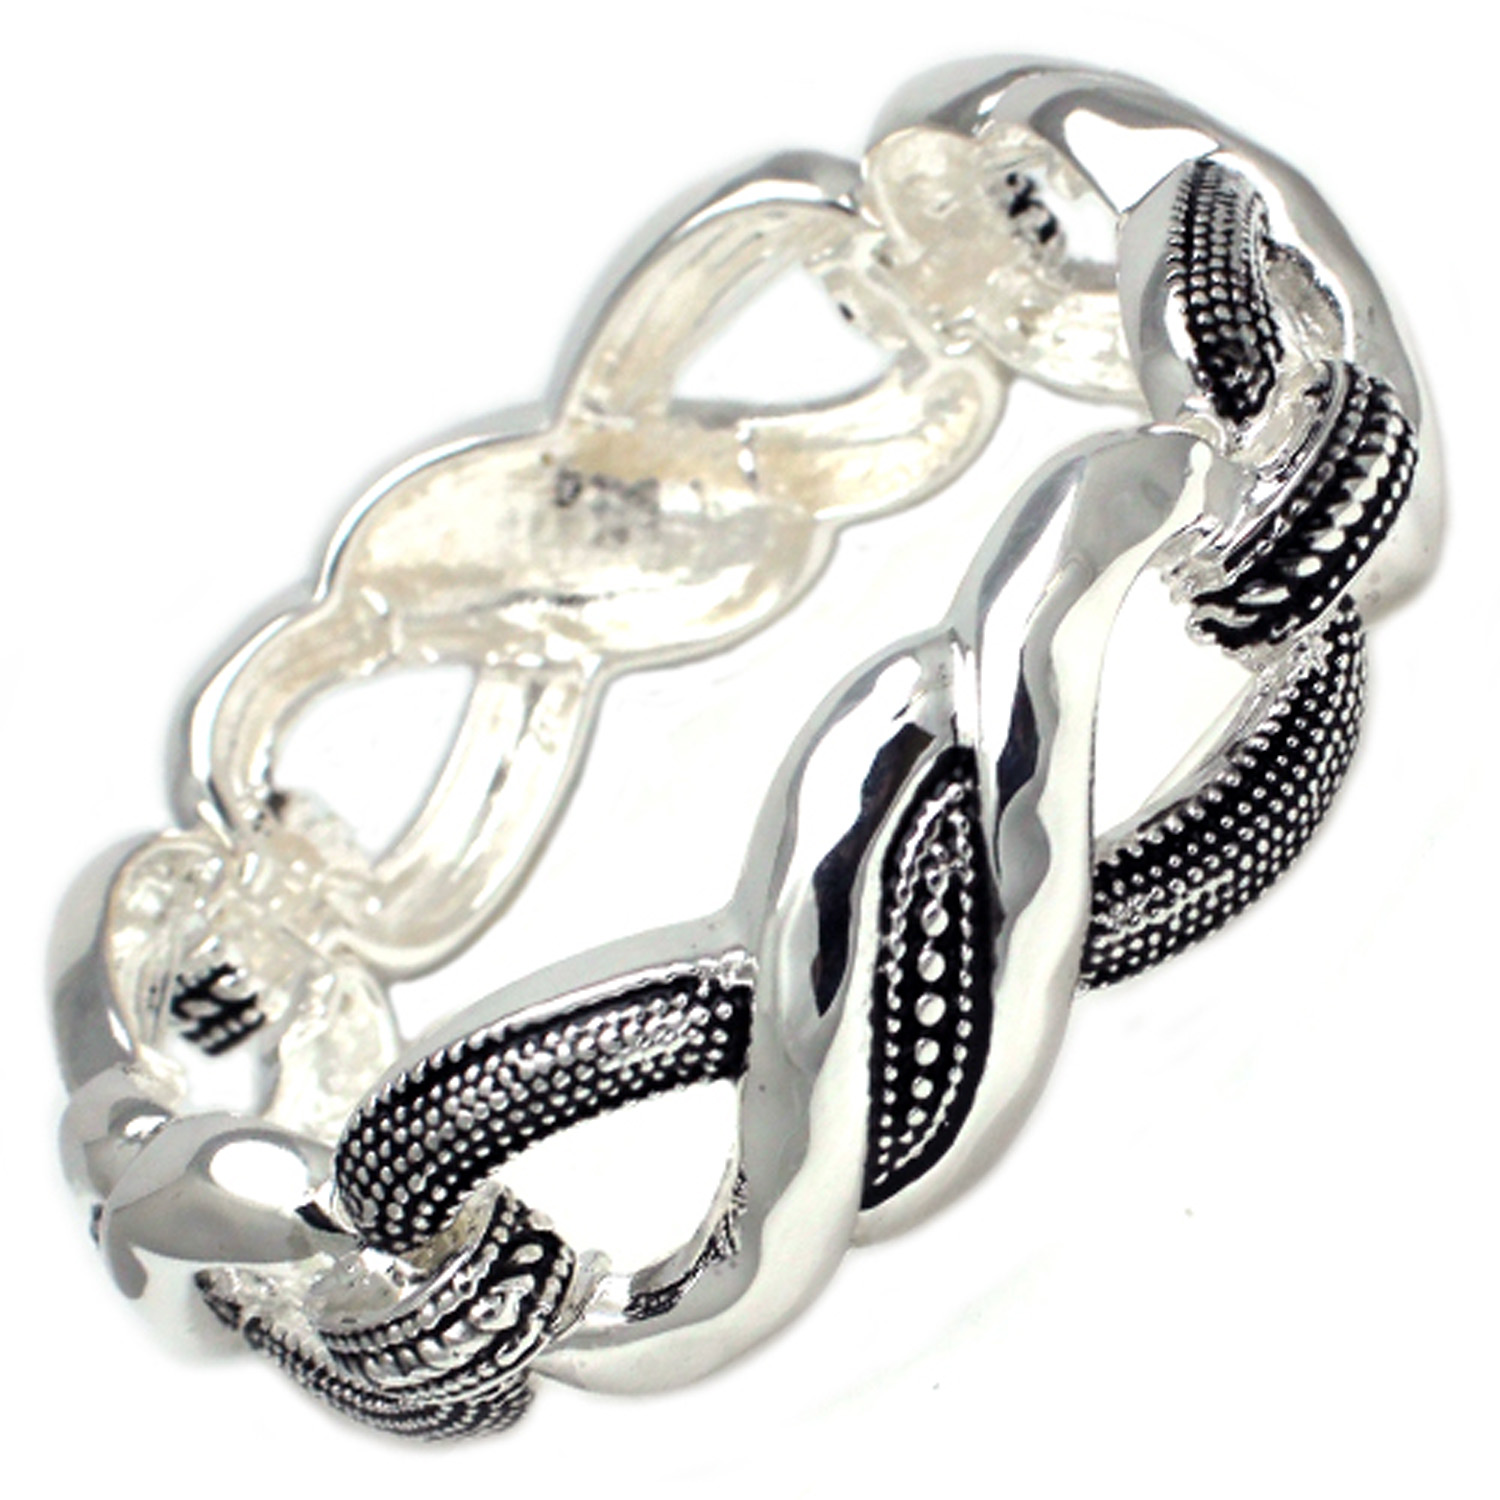 Antique Silver Plated Brass BANGLE in Twisted Design